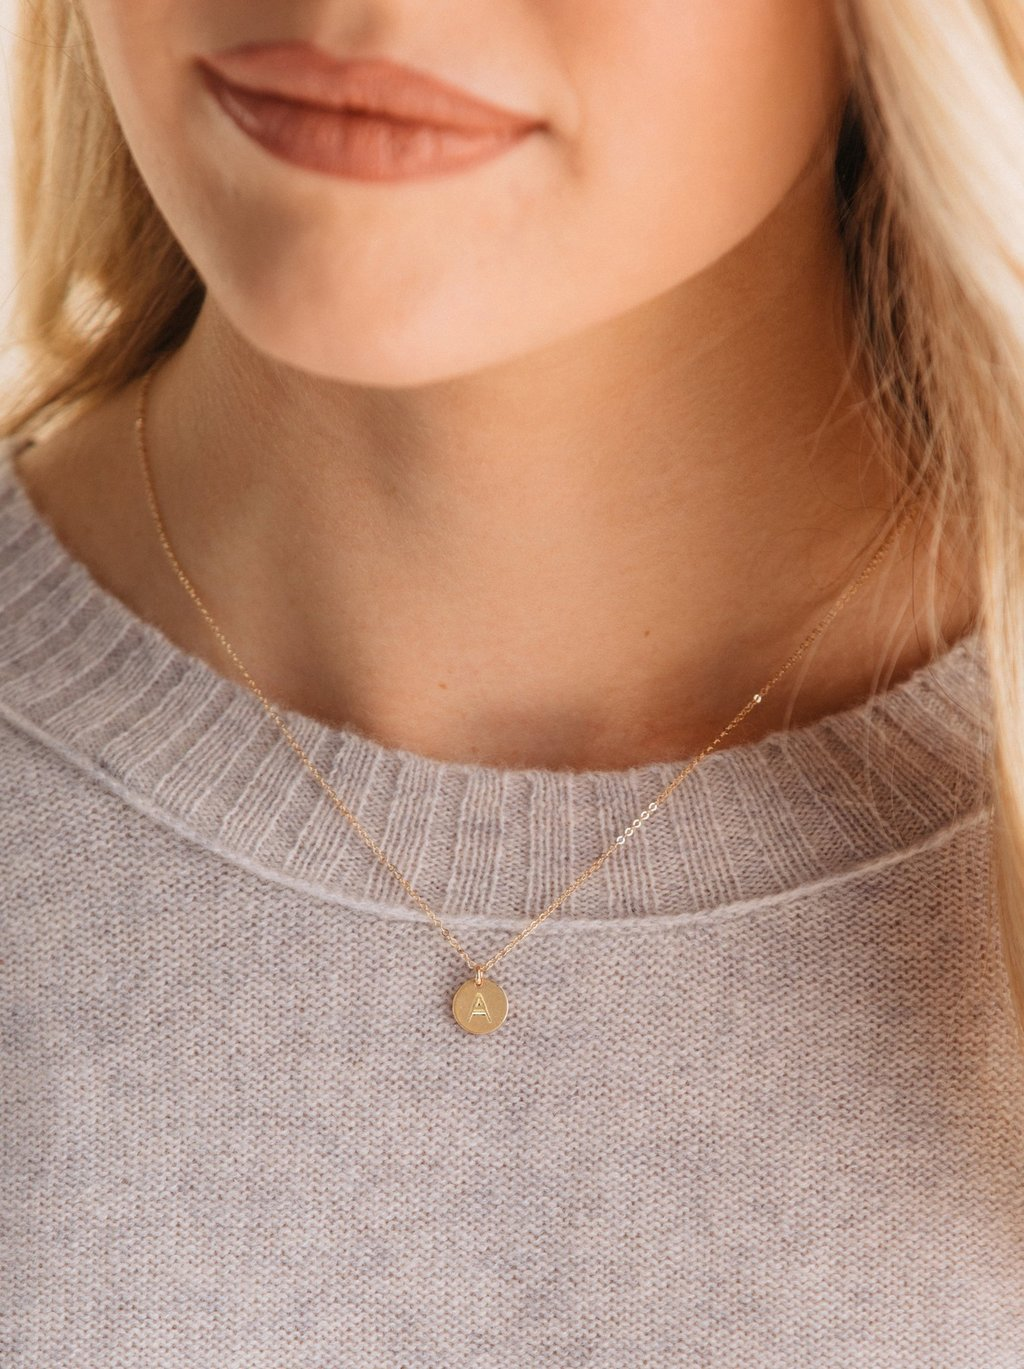 Able Tiny Tag Necklace